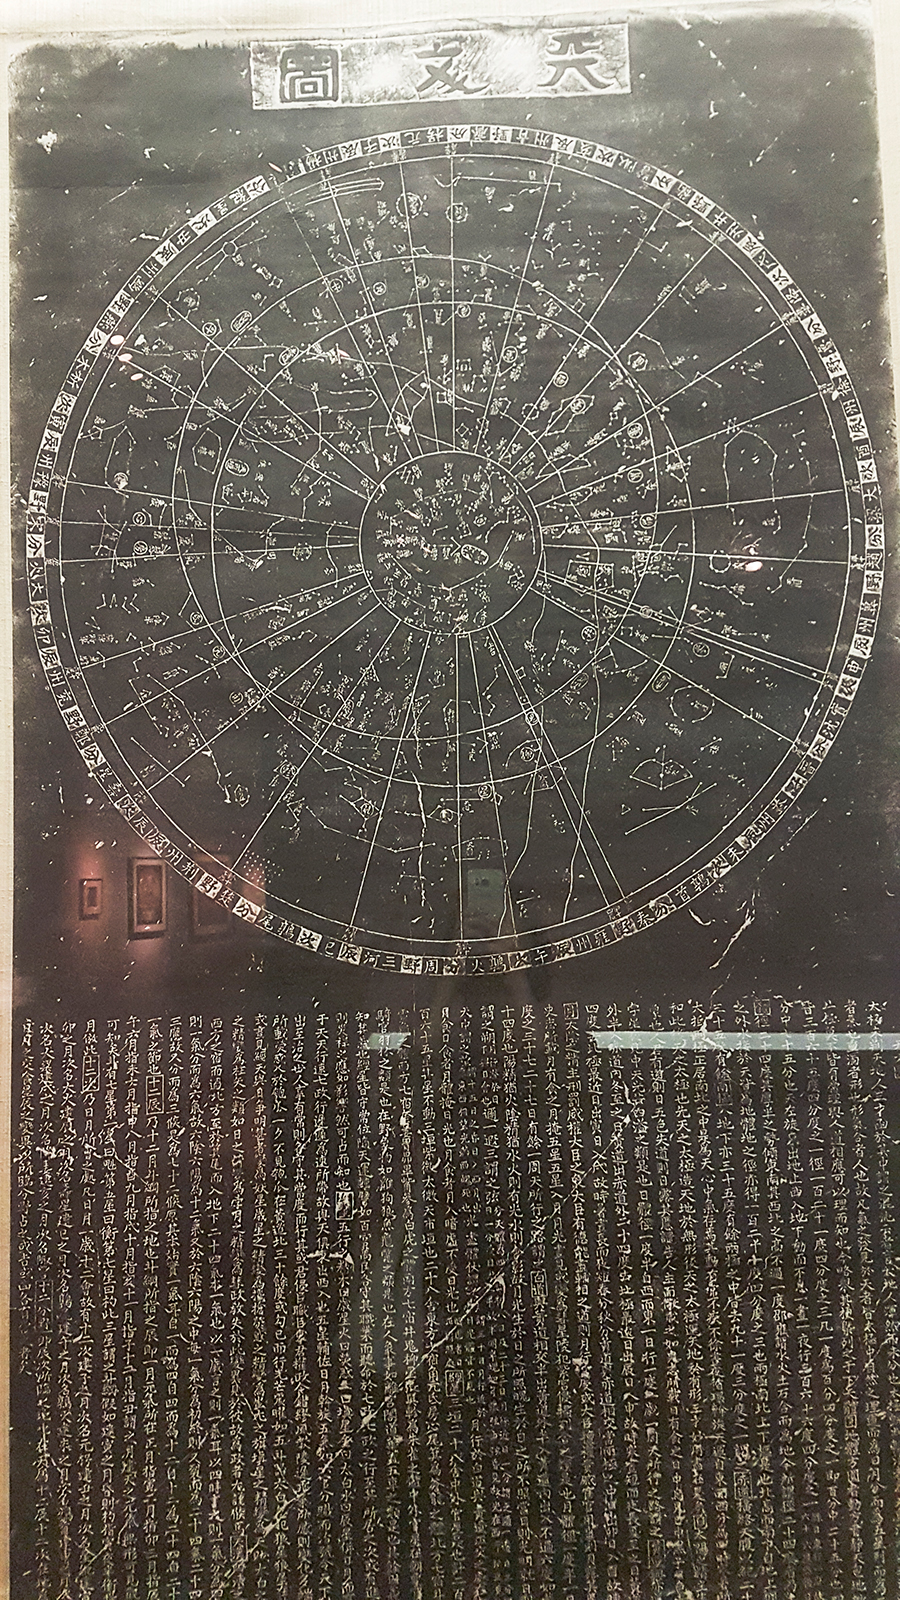 Chunyou Star Chart by Wang Zhiyuan, Ink impression of a stone-engraved carving in 1247 at the The Universe and Art: An Artistic Voyage Through Space exhibition, ArtScience Museum Singapore.